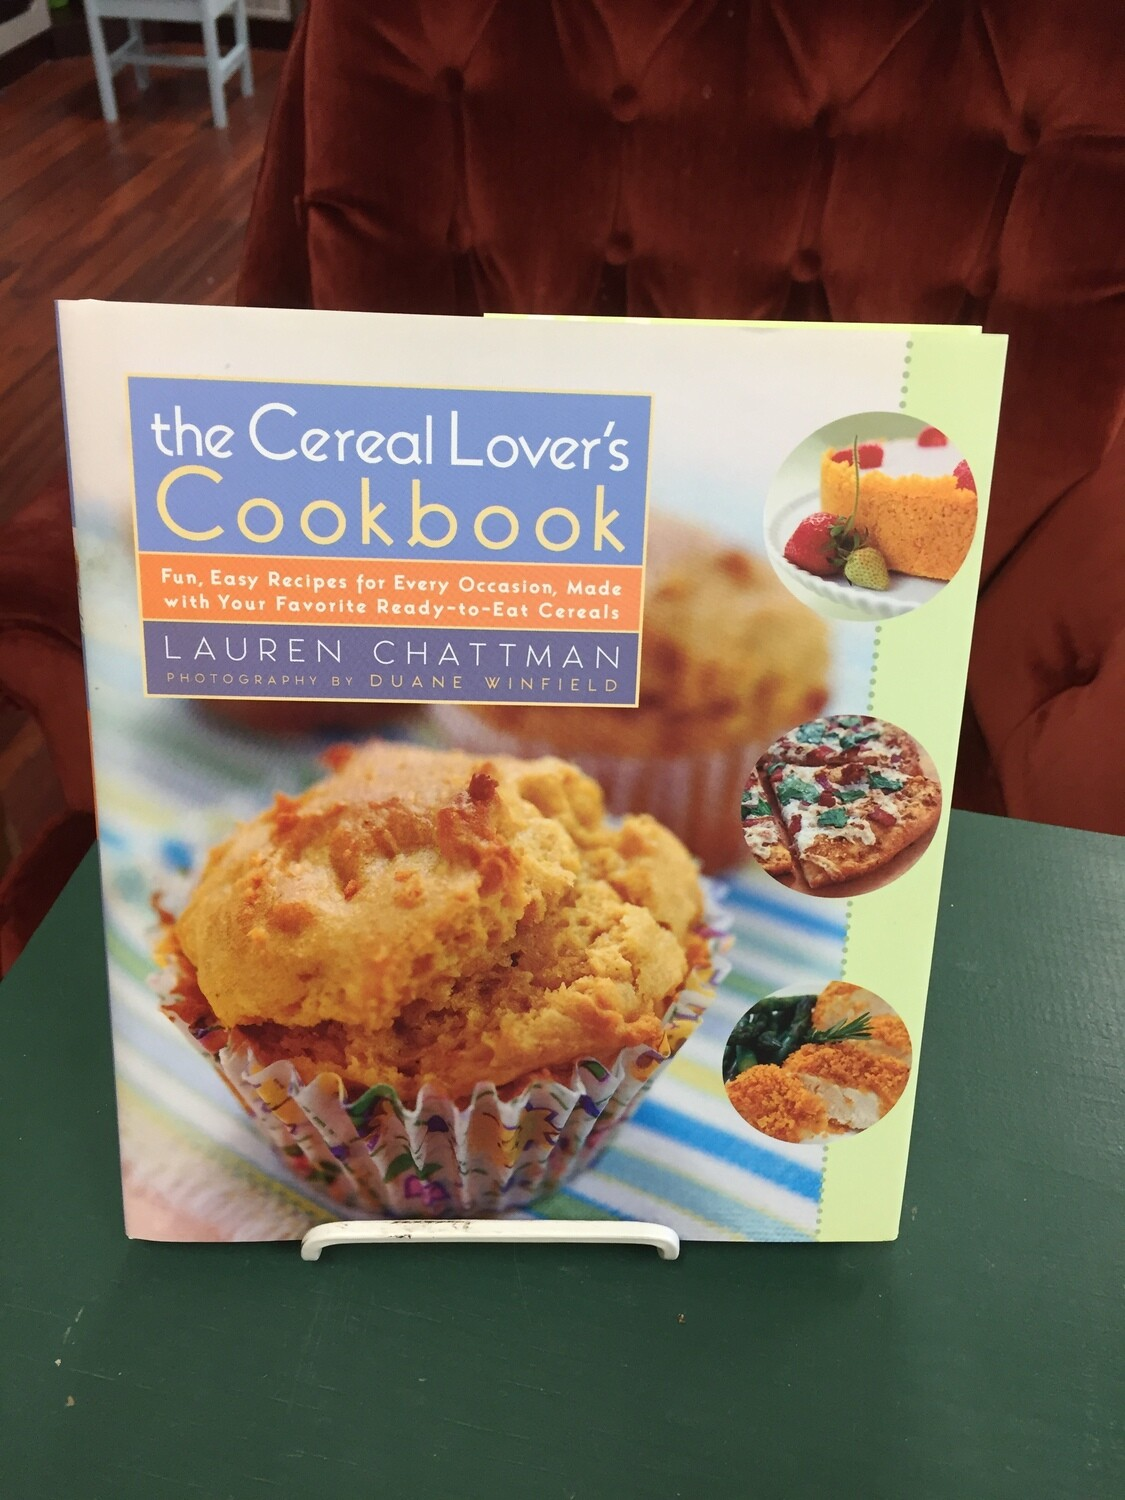 The Cereal Lover's Cookbook